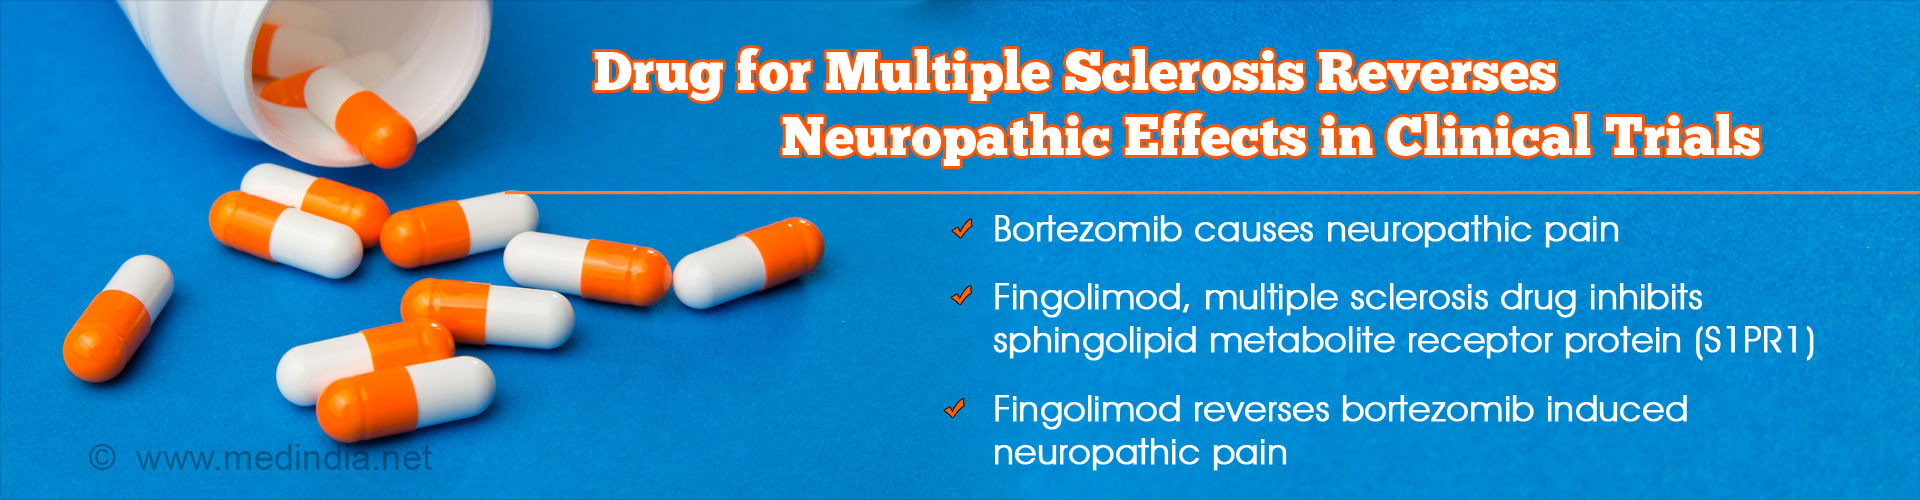 drug for multiple sclerosis reverses neuropathic effects in clinical trials - bortezomib causes neuropathic pain - fingolimod, multiple sclerosis drug inhibits sphingolipid metabolite receptor protein (S1PR1) - fingolimod reverses bortezomib induced neuropathic pain